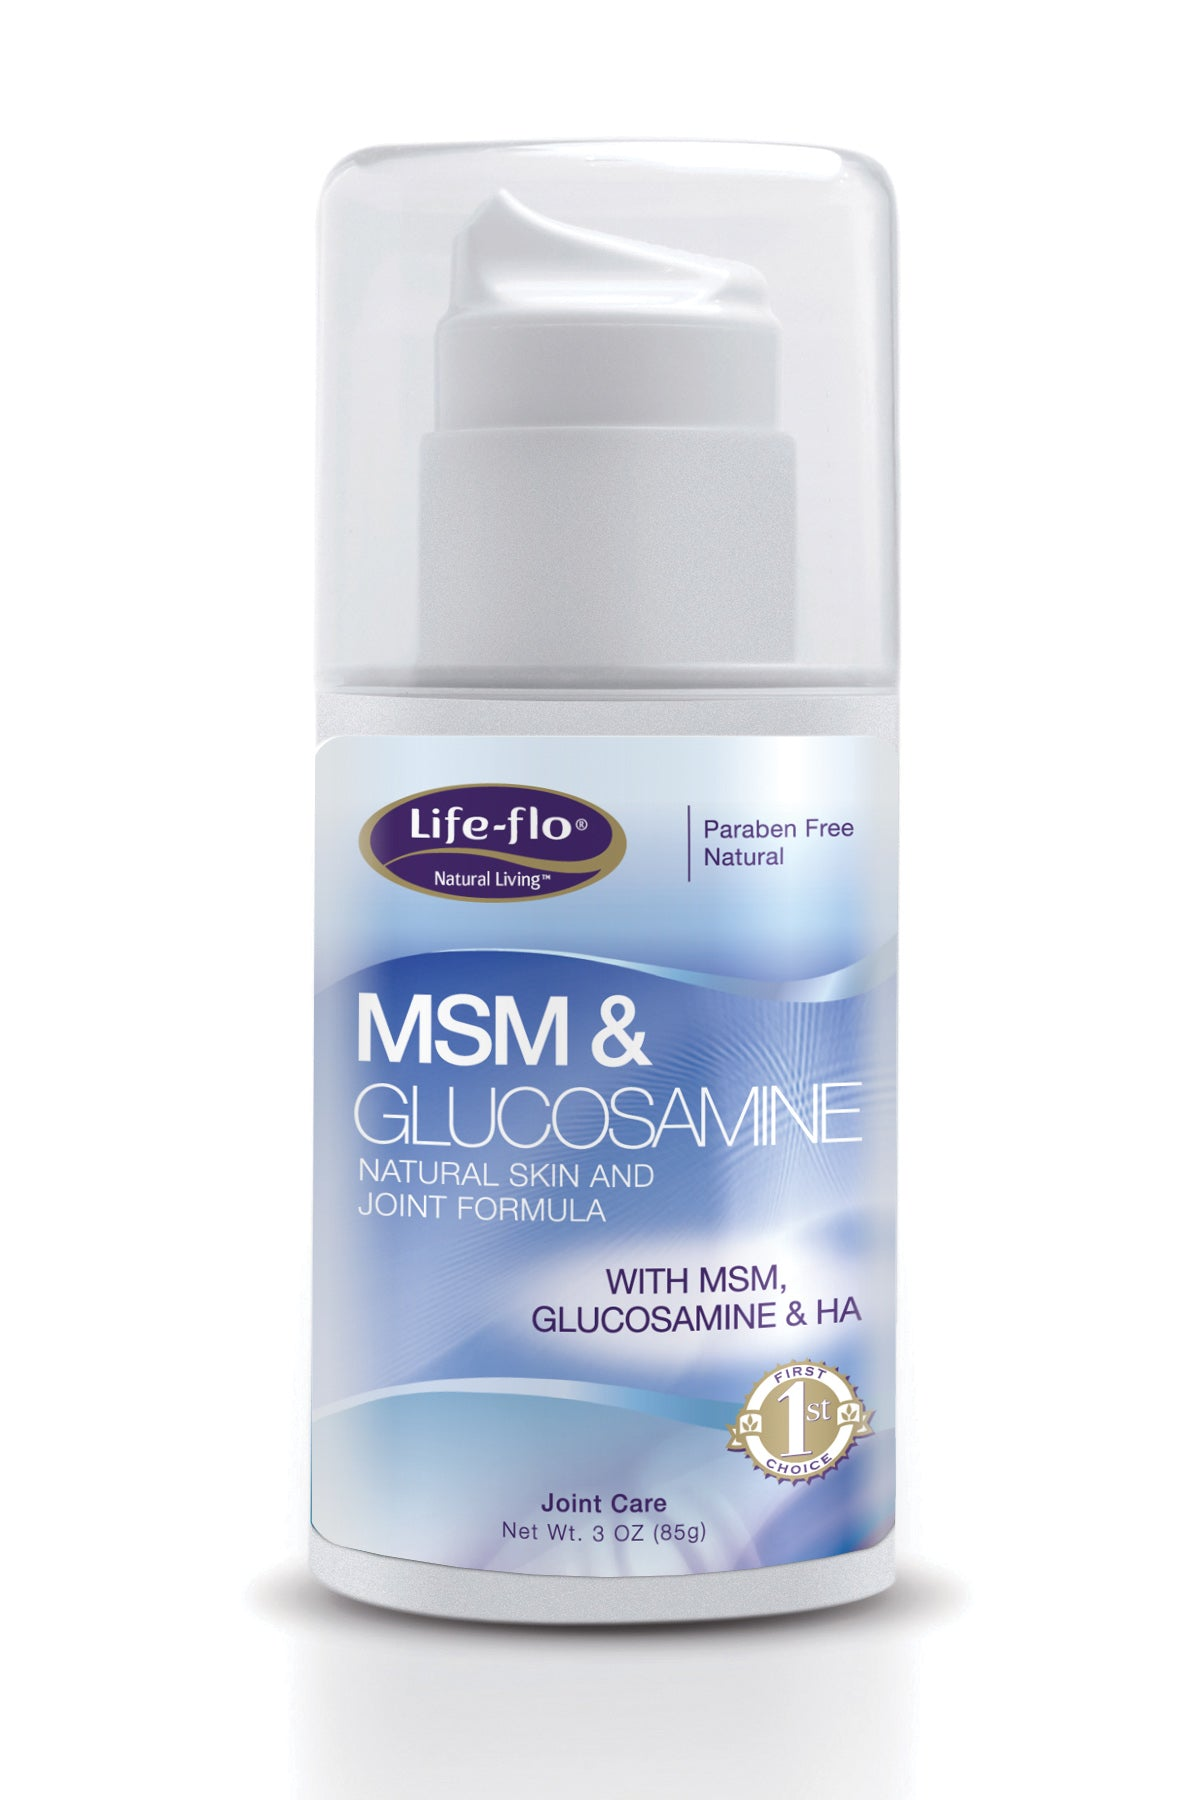 Msm & Glucosamine - 3 ounces